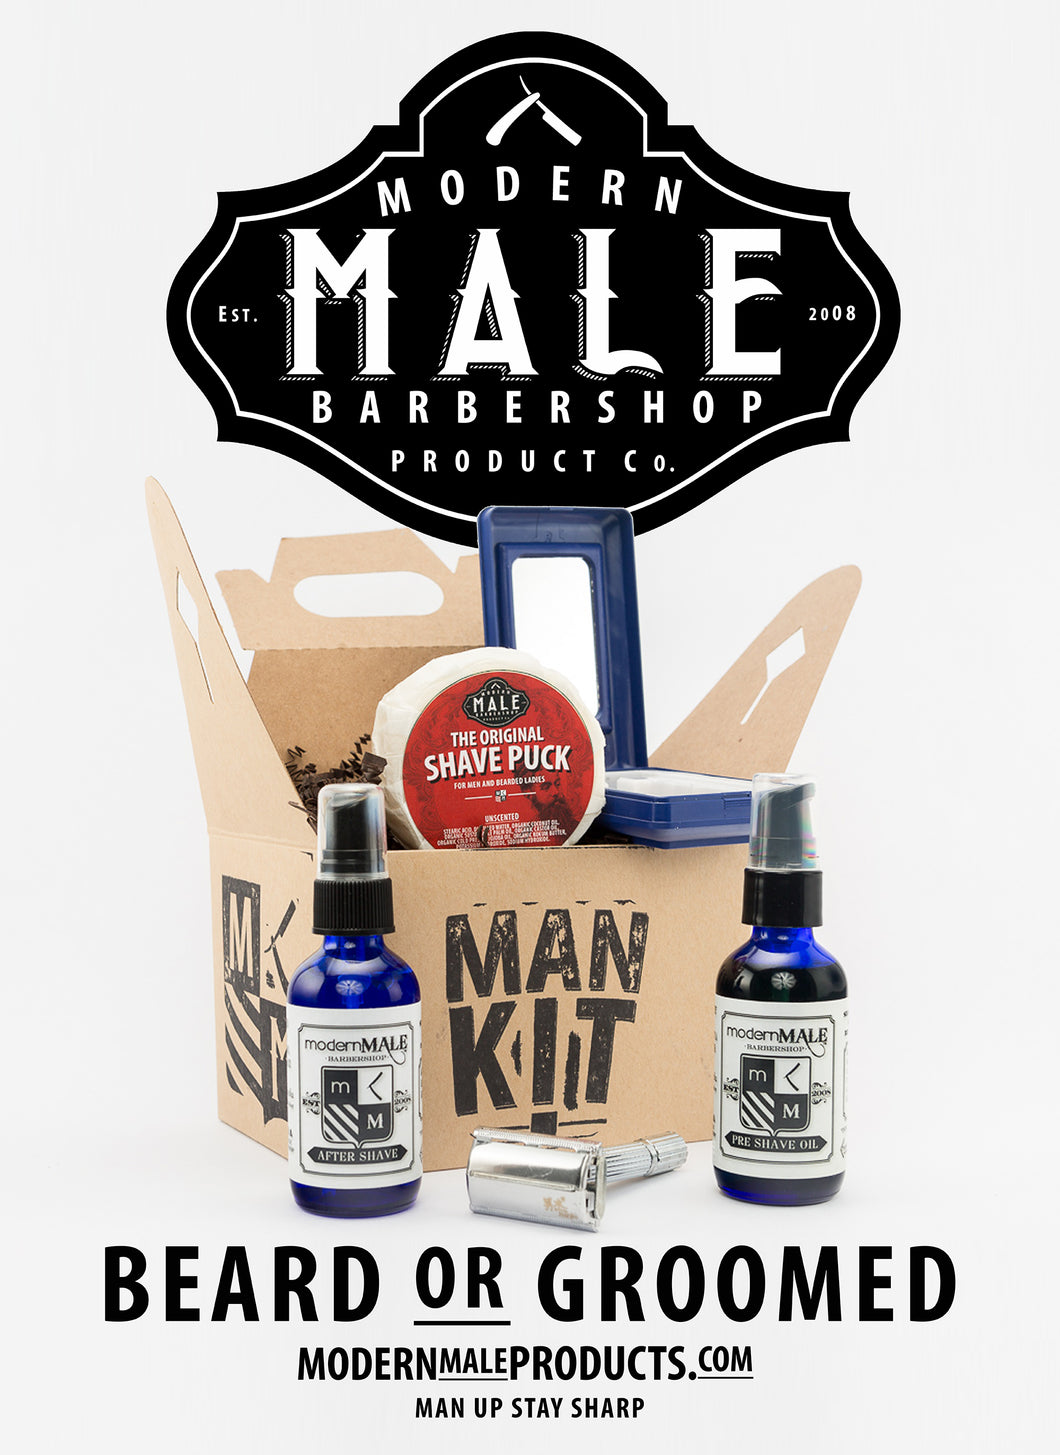 Shave Kit 1: Aftershave Oil, Preshave Oil, Shave Puck, Razor